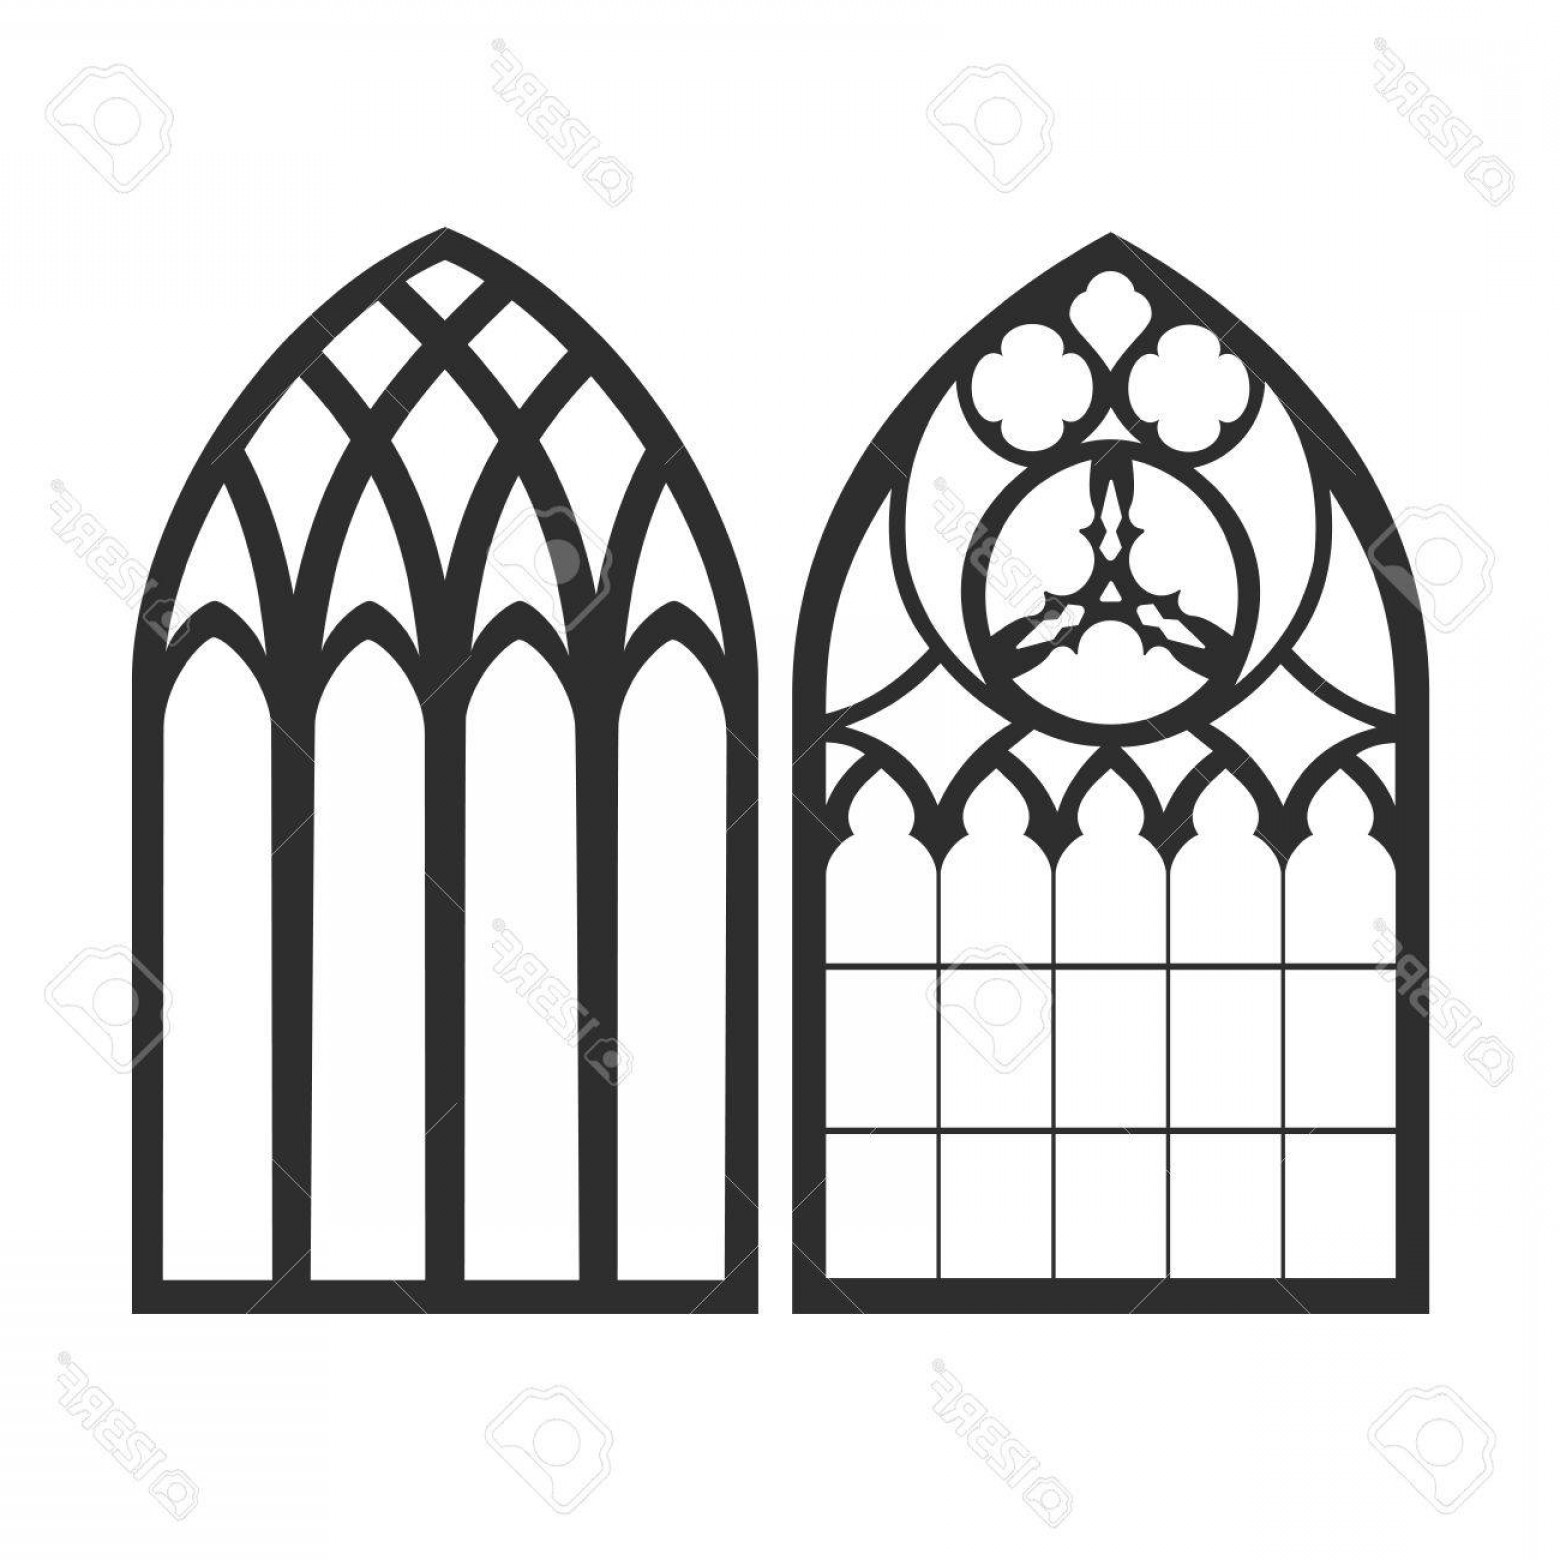 1560x1560 Photostock Vector Gothic Windows Vintage Frames Church Stained